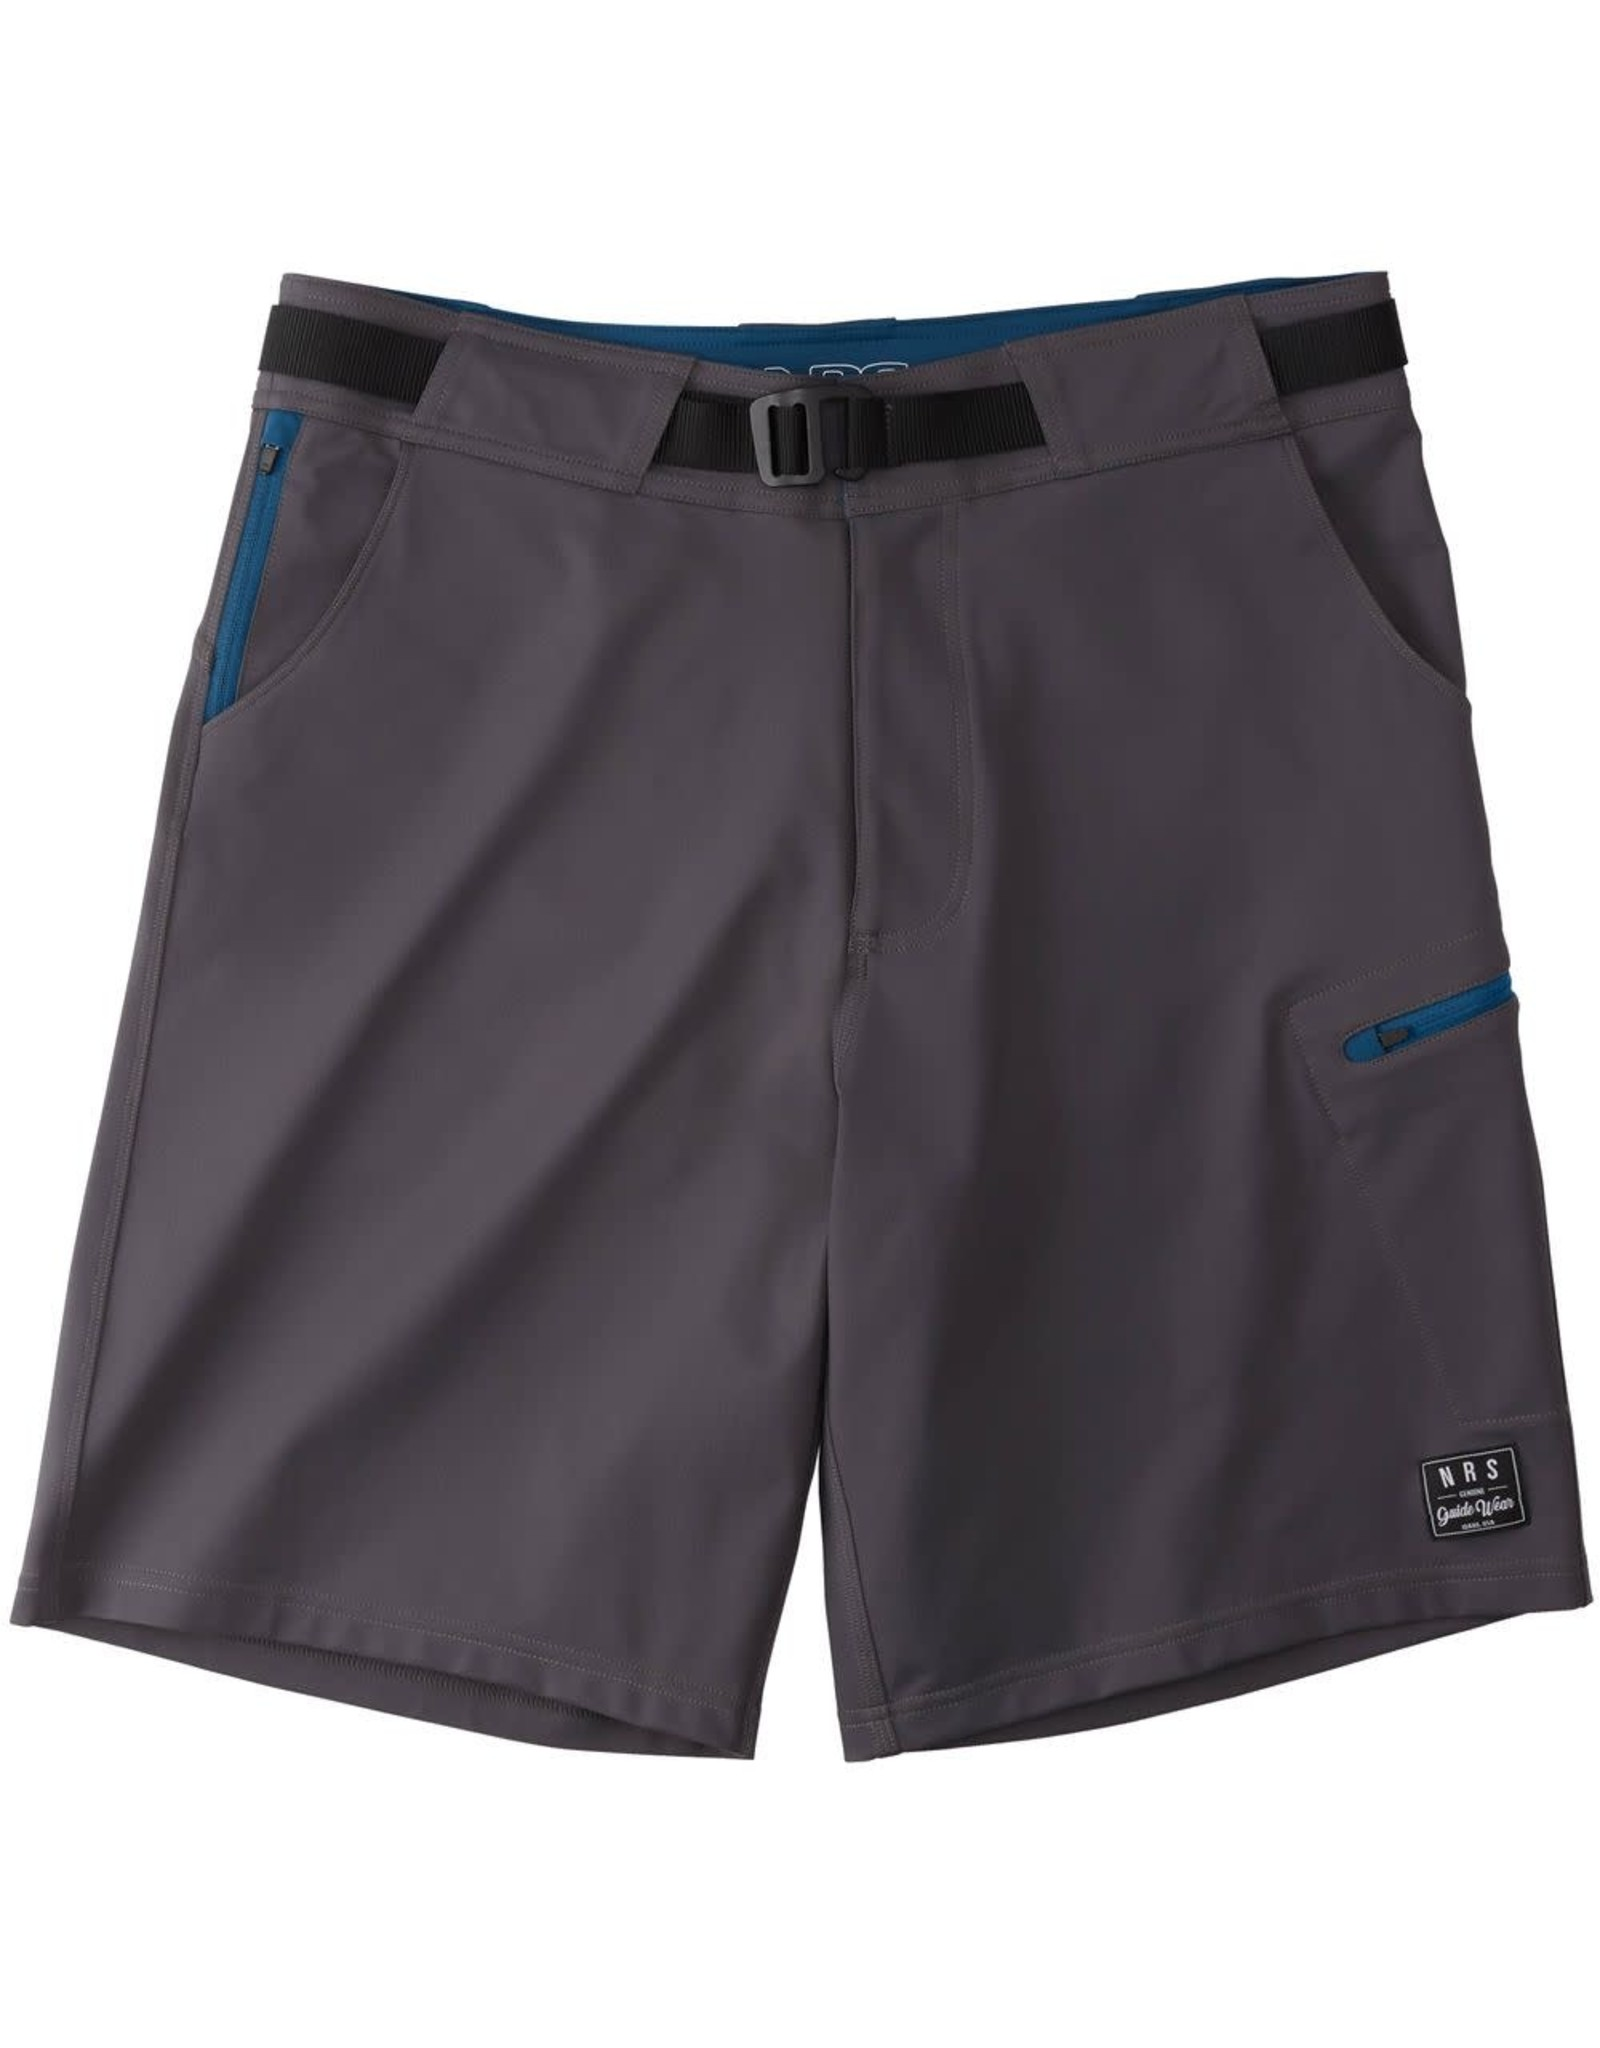 NRS NRS Men's Guide Short